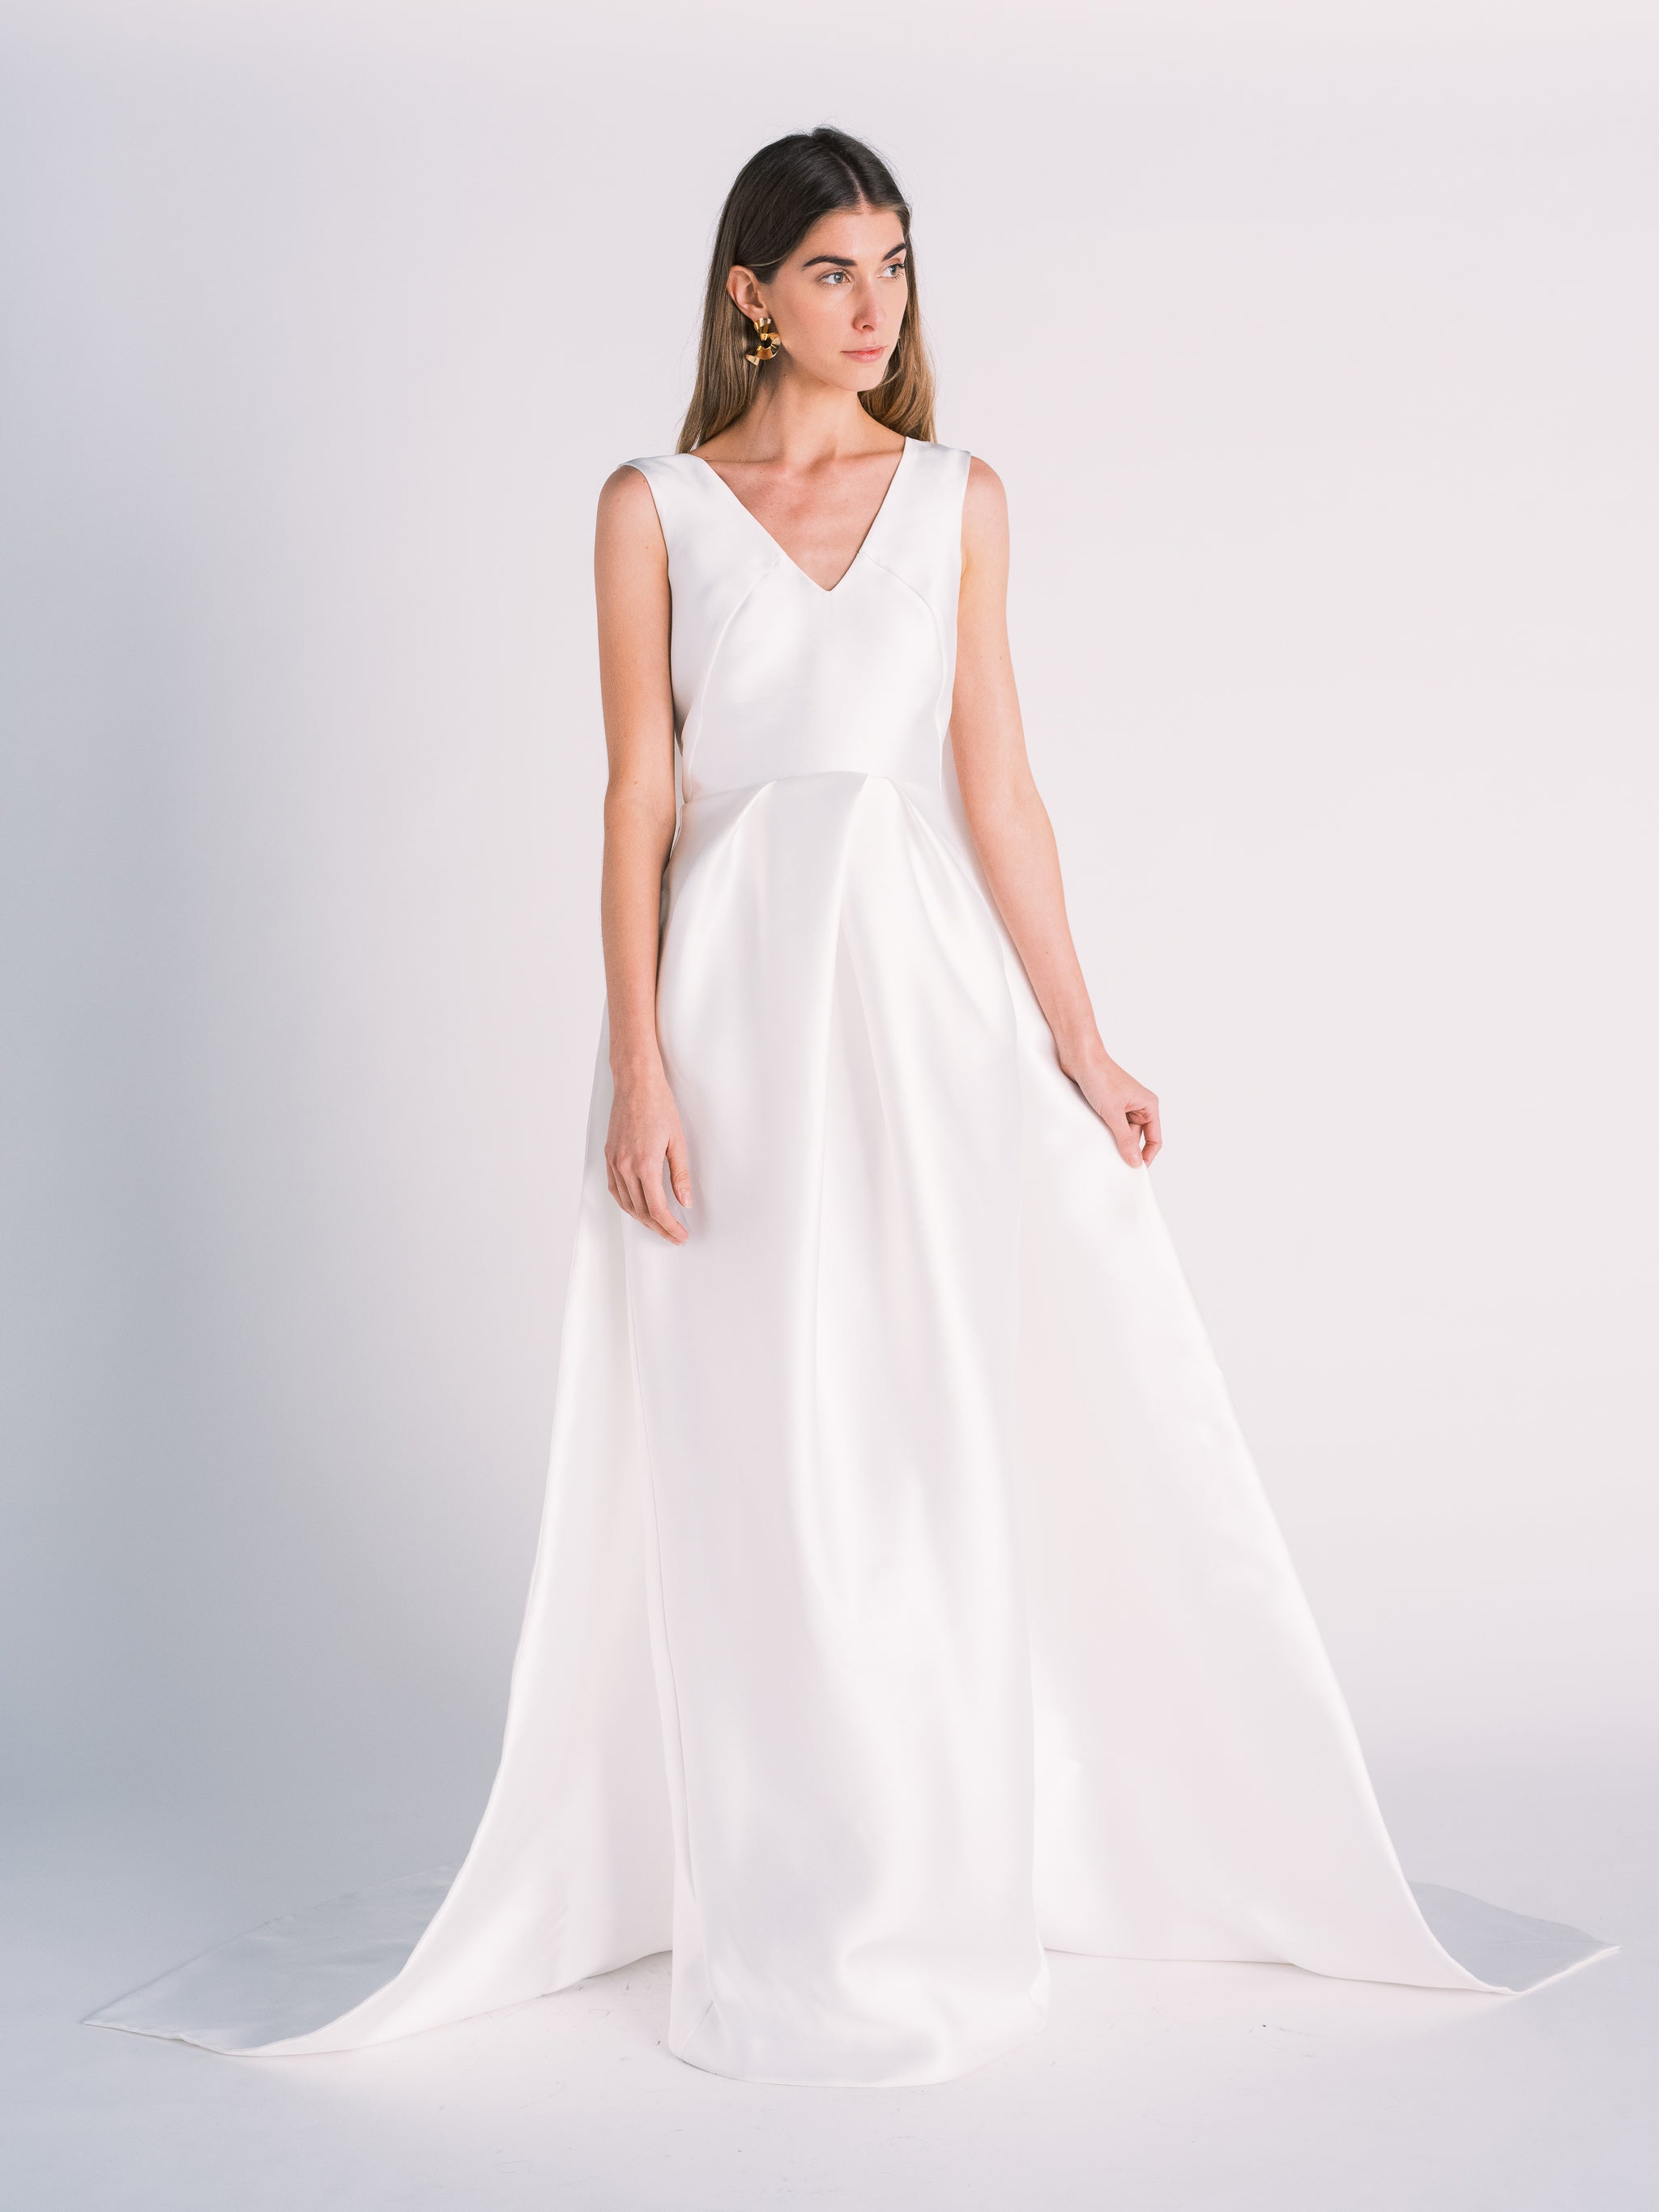 Wedding Dress with Train in Eggshell White